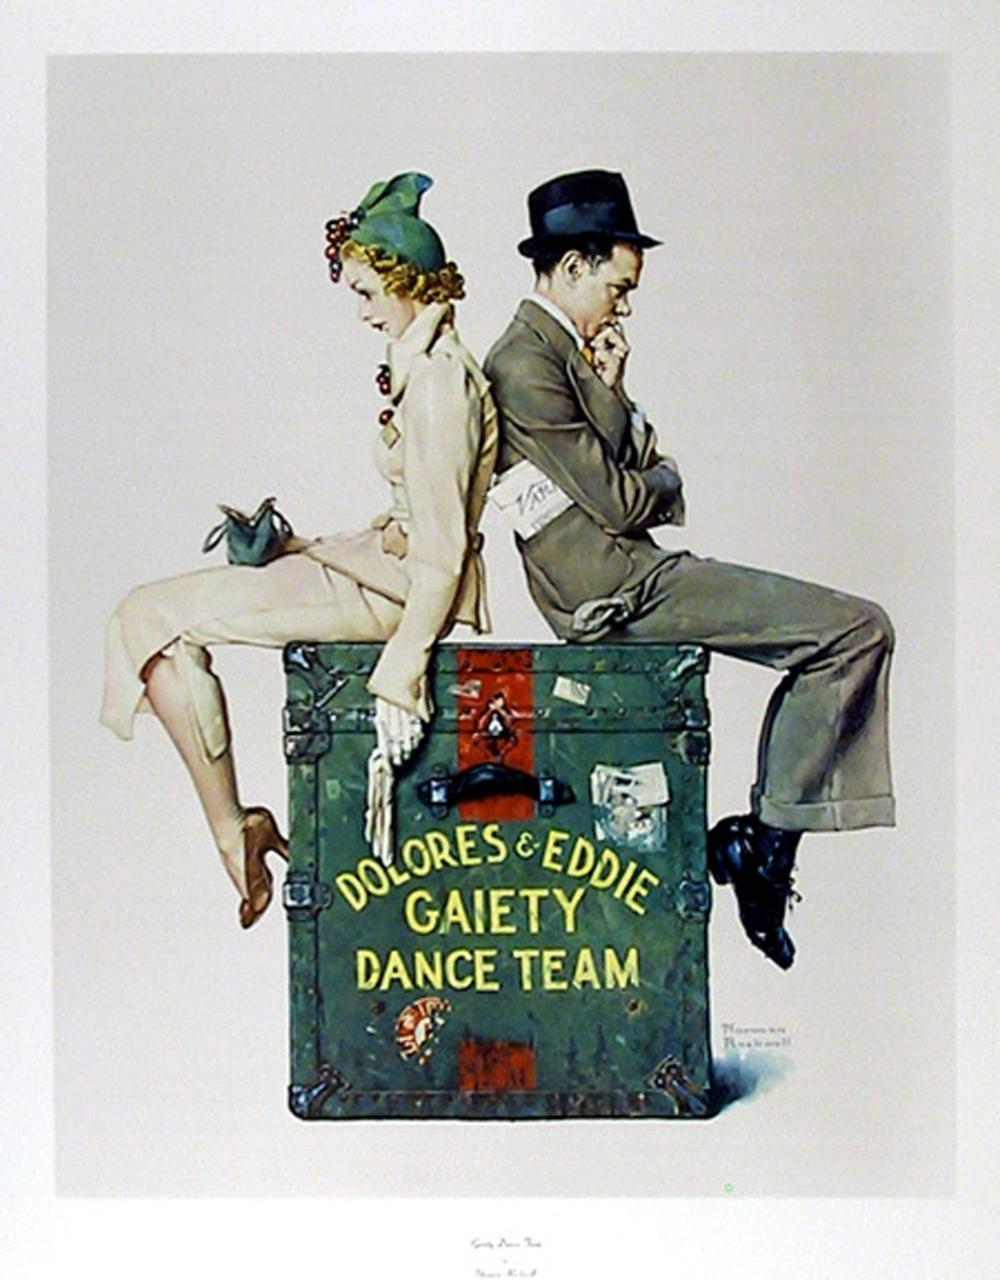 Norman Rockwell, Gaiety Dance Team, Vintage Poster